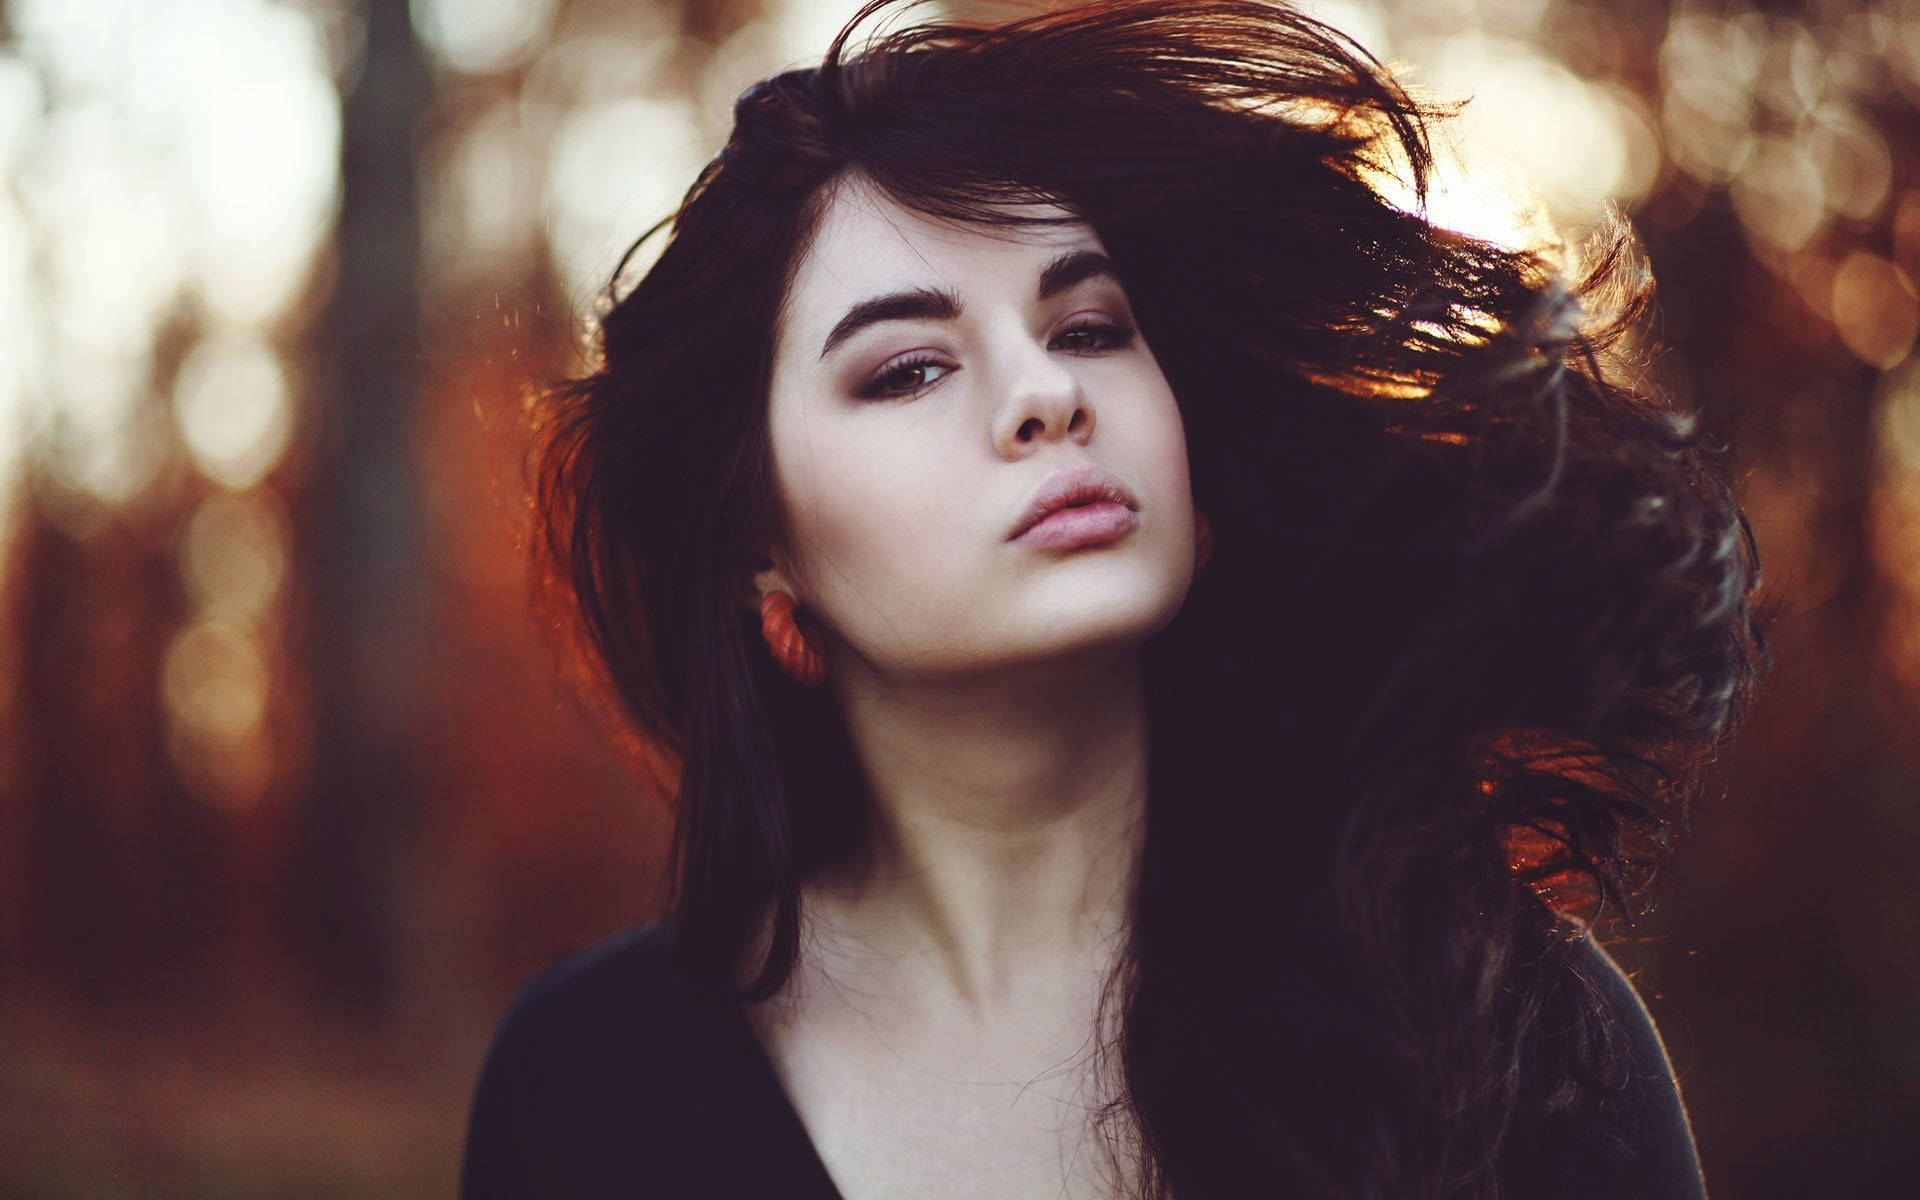 beautiful ladies images reverse search